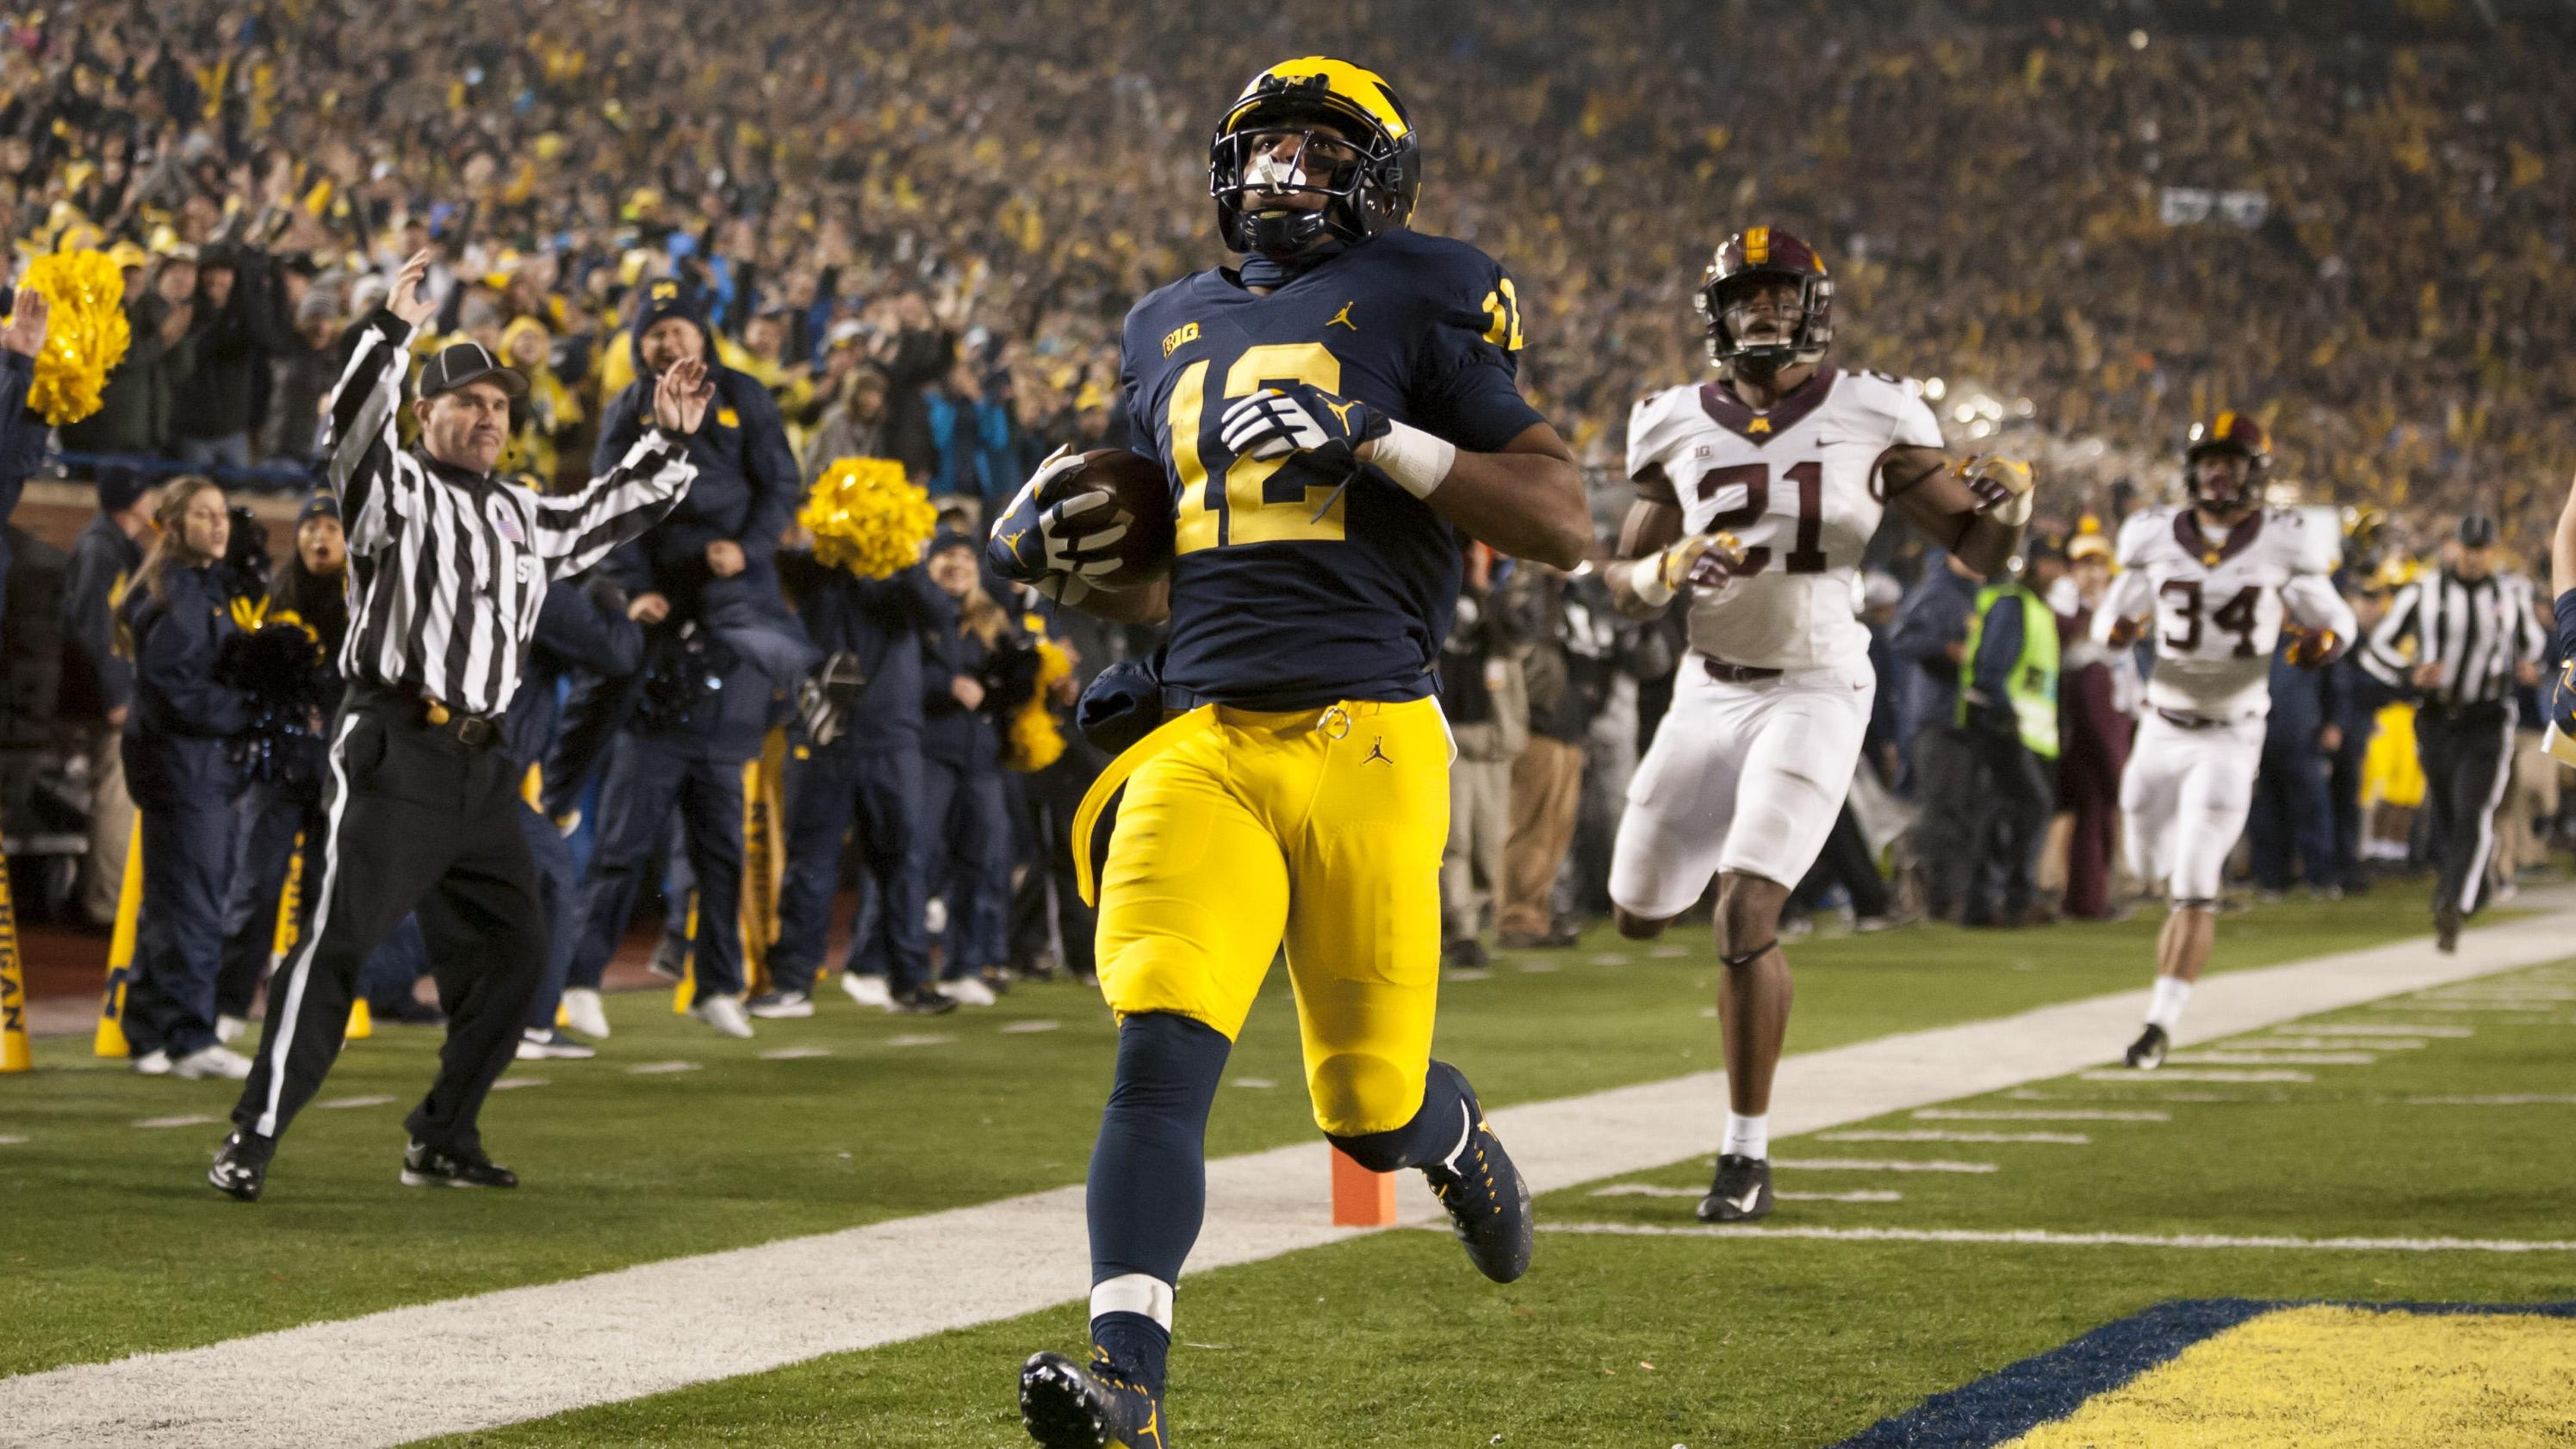 ef849ee5a Michigan running game excels in win over Minnesota (4.10 14)